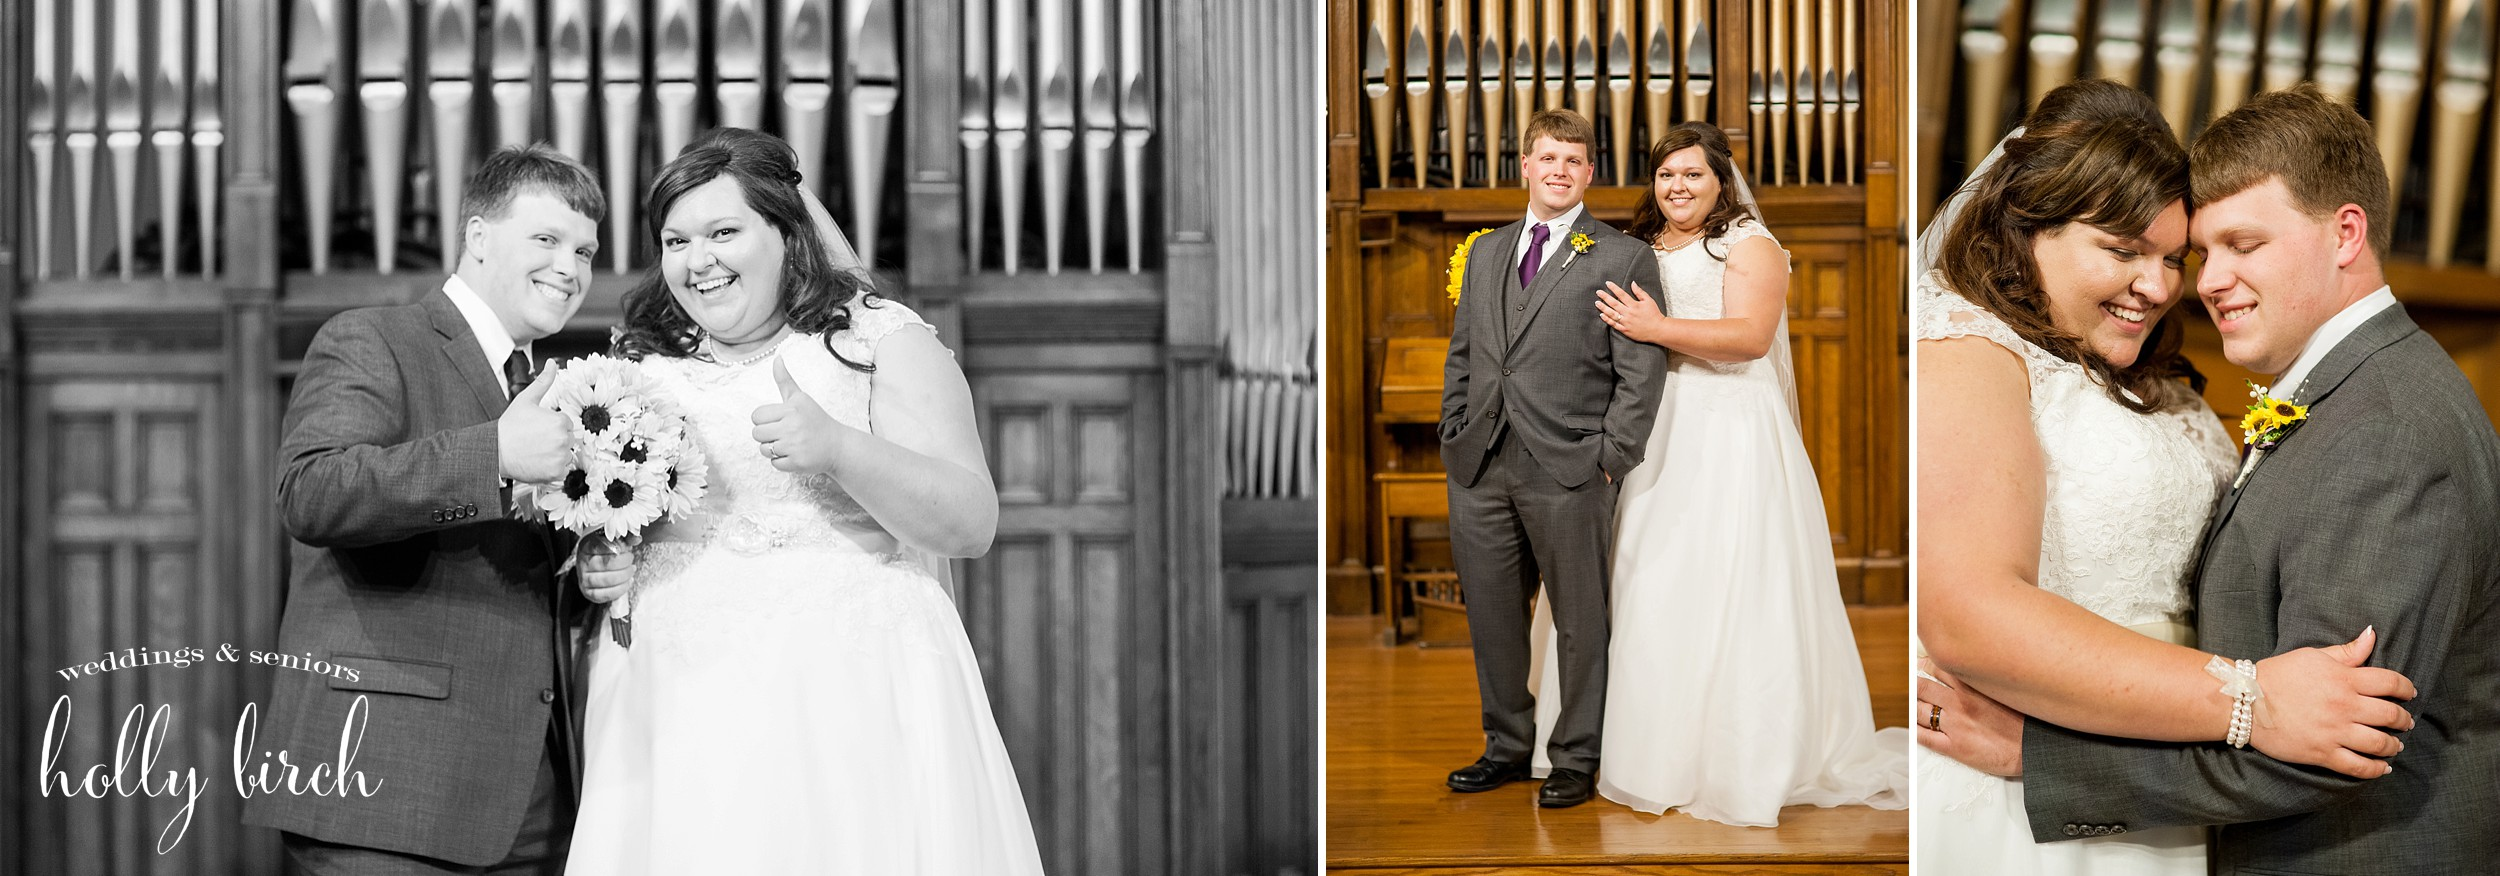 formal portraits in church sanctuary